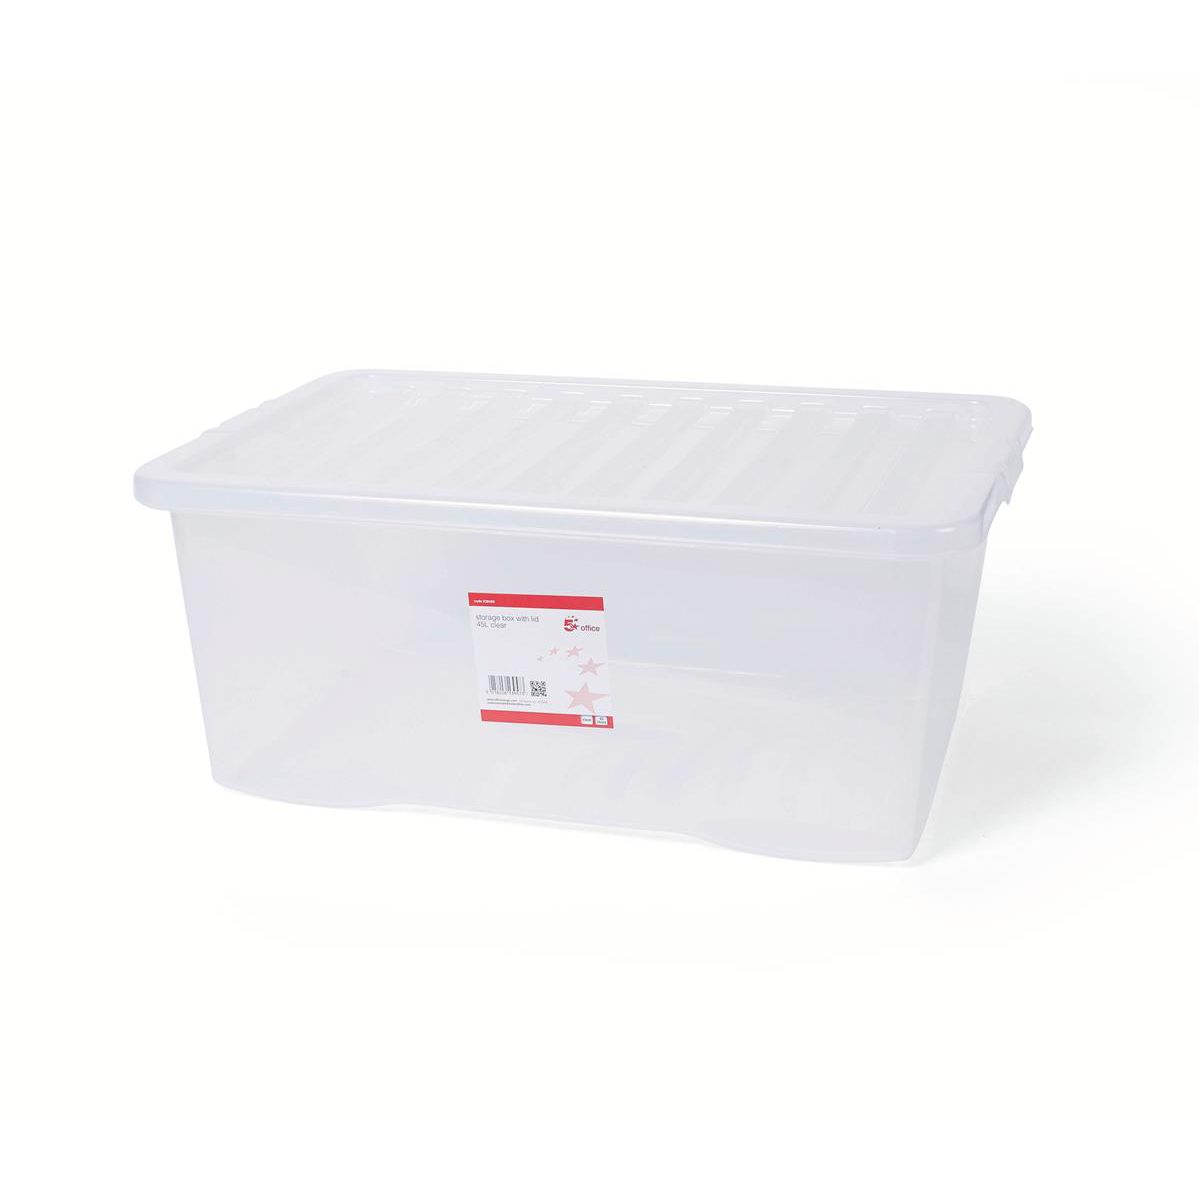 Tool Boxes 5 Star Office Storage Box Plastic with Lid Stackable 45 Litre Clear